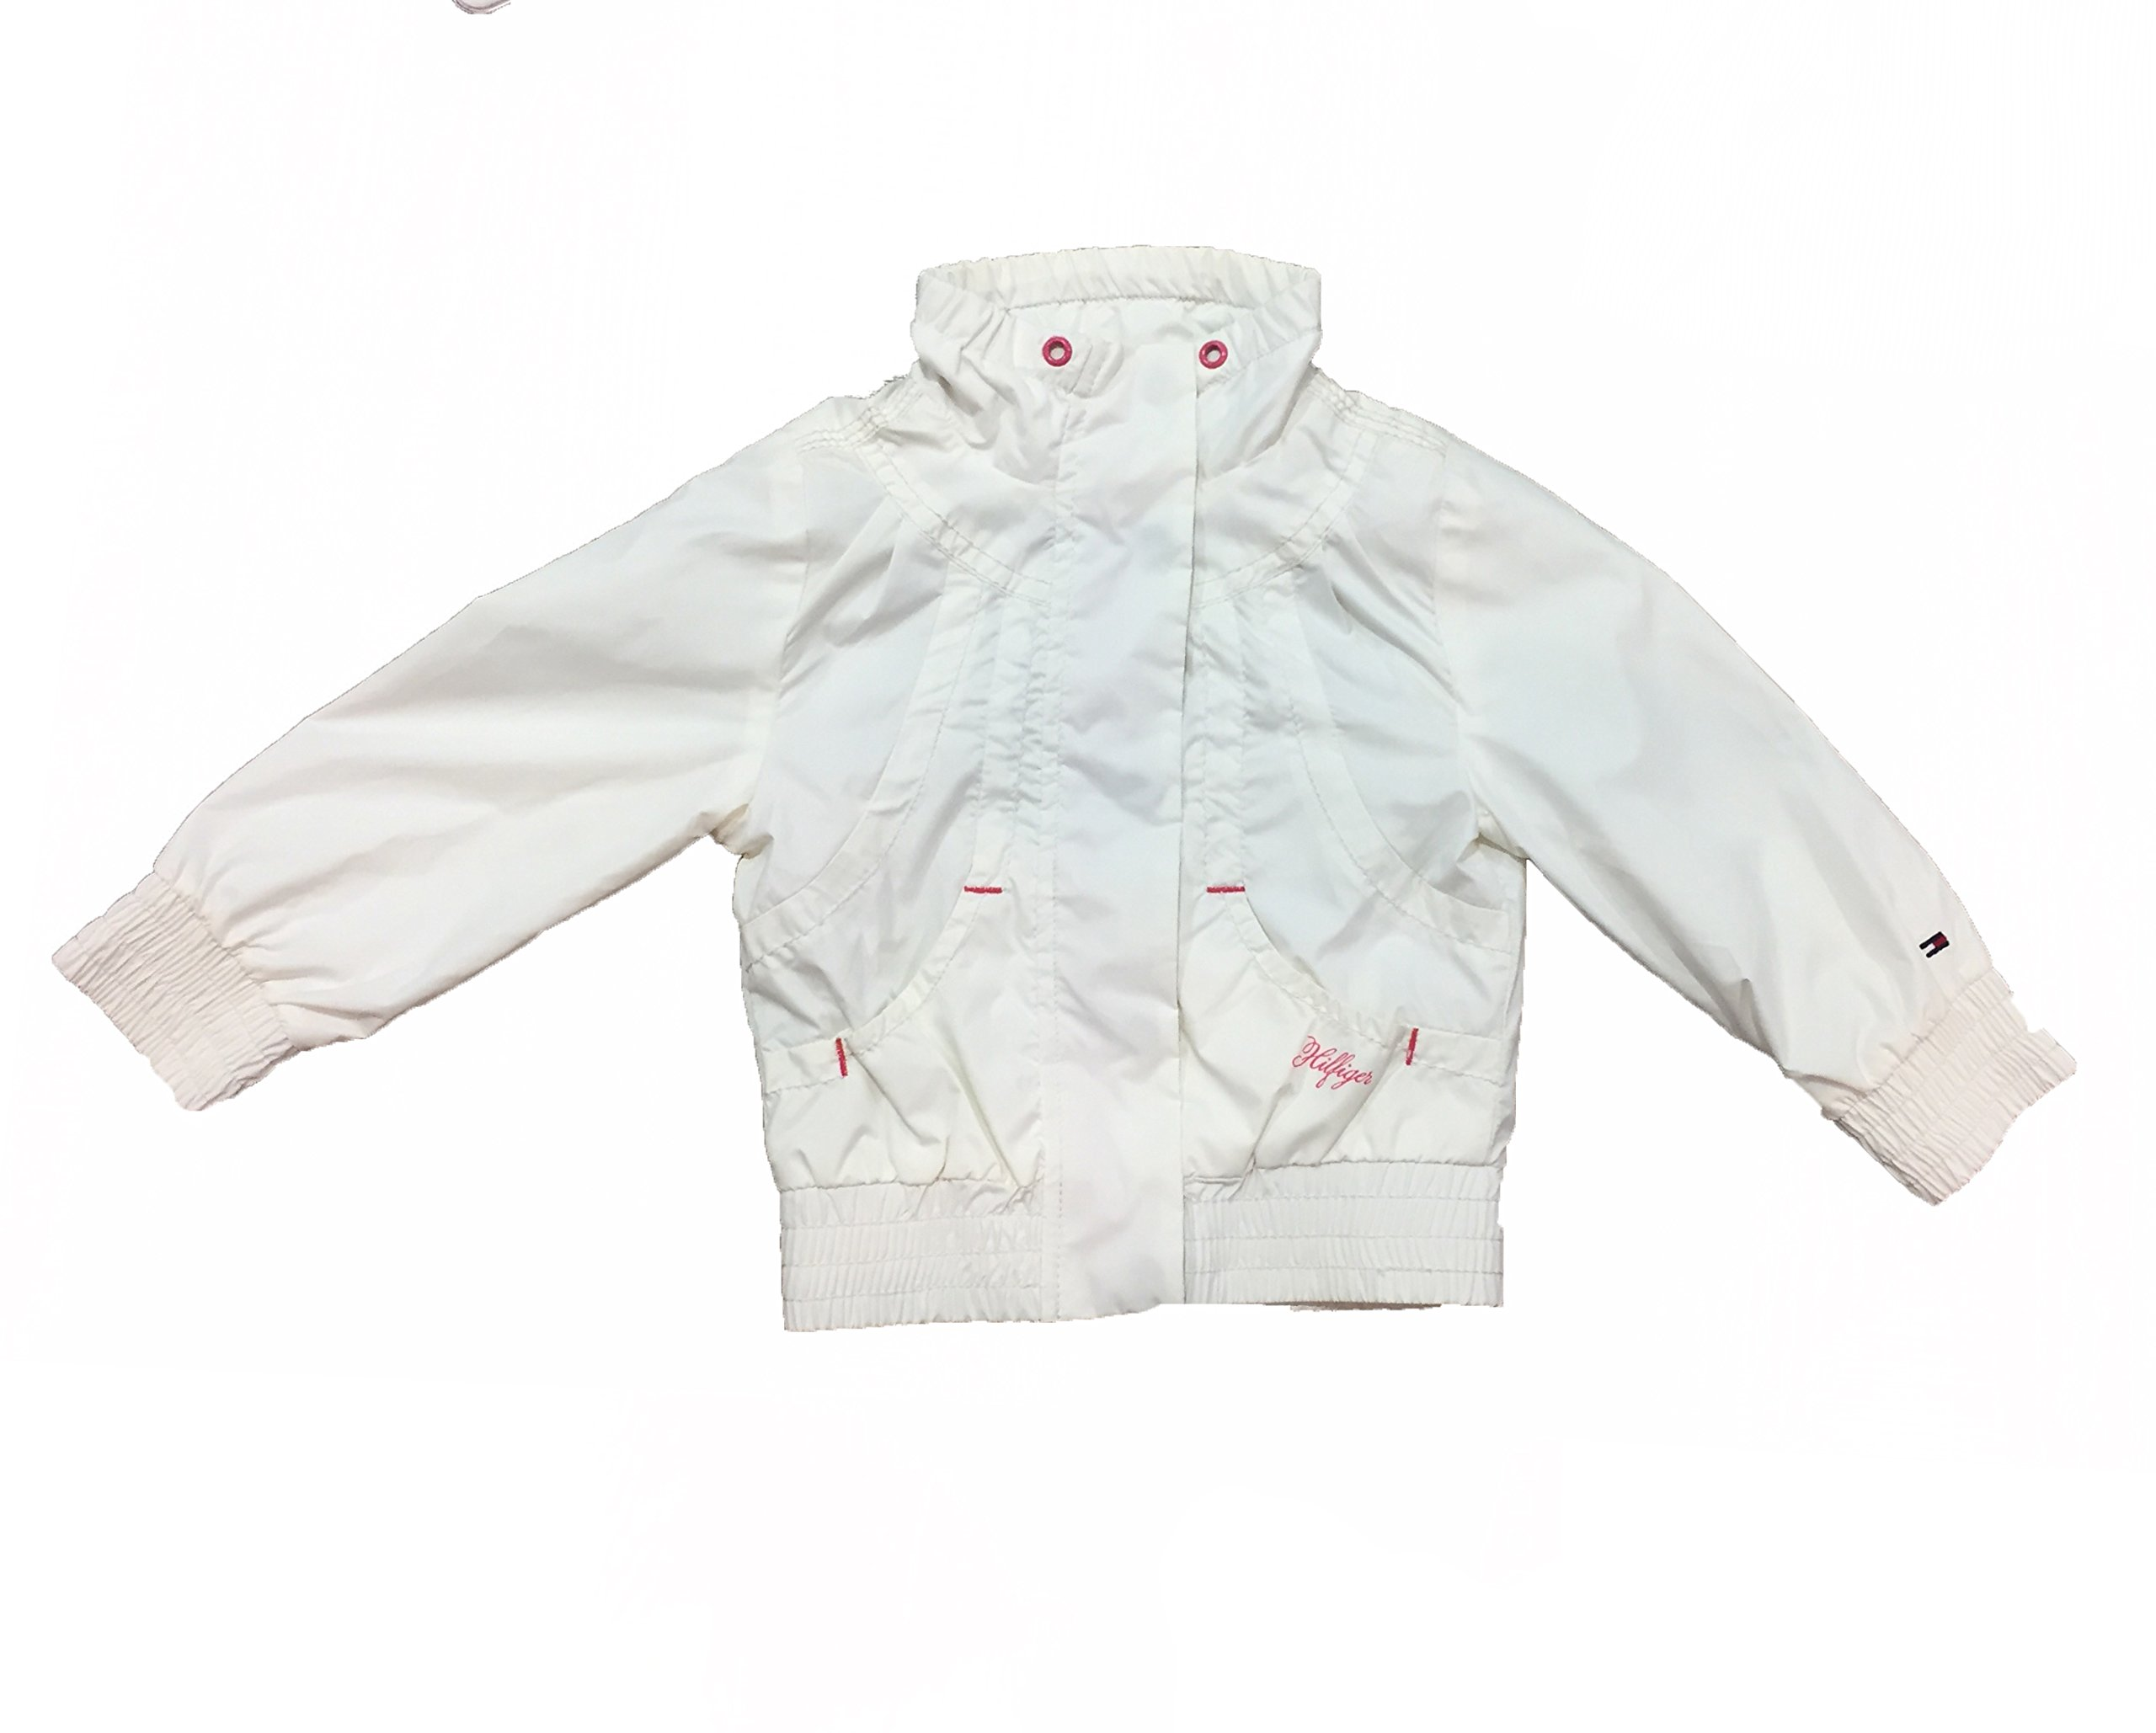 Tommy Hilfiger – Chaqueta Impermeable Talla 12 Meses